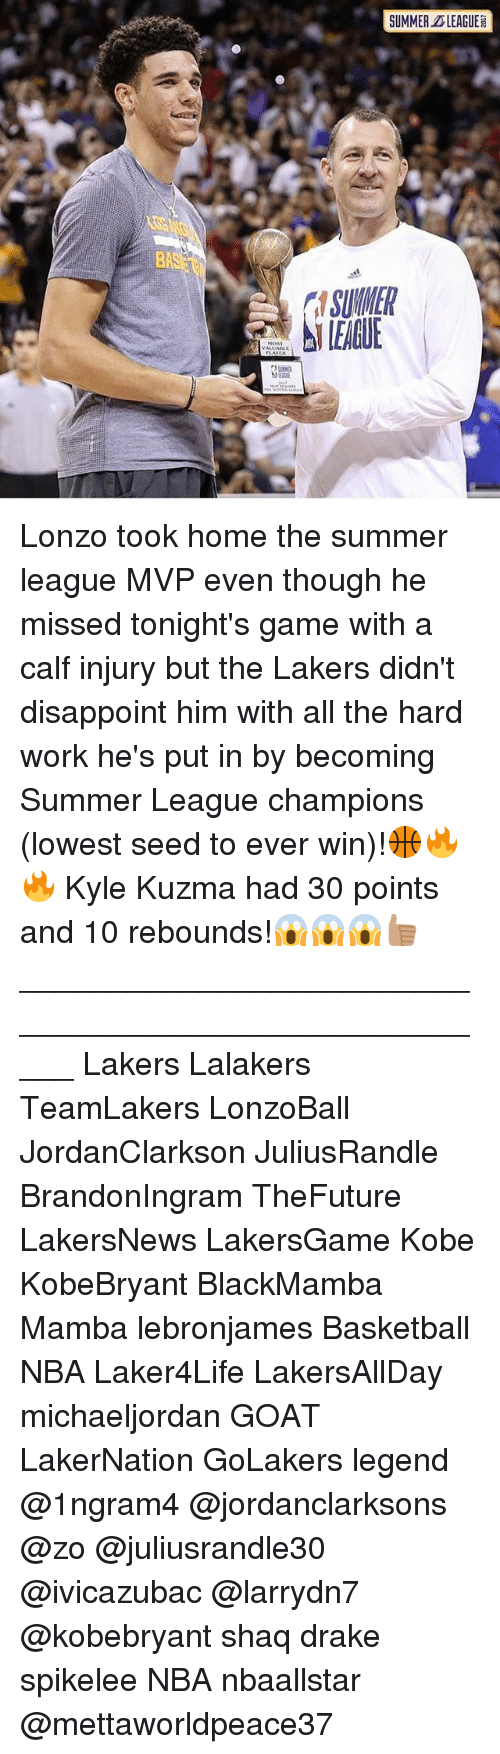 Basketball, Drake, and Los Angeles Lakers: SUMMER LEAGUE  SUMNER  LEAGUE Lonzo took home the summer league MVP even though he missed tonight's game with a calf injury but the Lakers didn't disappoint him with all the hard work he's put in by becoming Summer League champions (lowest seed to ever win)!🏀🔥🔥 Kyle Kuzma had 30 points and 10 rebounds!😱😱😱👍🏽 _____________________________________________________ Lakers Lalakers TeamLakers LonzoBall JordanClarkson JuliusRandle BrandonIngram TheFuture LakersNews LakersGame Kobe KobeBryant BlackMamba Mamba lebronjames Basketball NBA Laker4Life LakersAllDay michaeljordan GOAT LakerNation GoLakers legend @1ngram4 @jordanclarksons @zo @juliusrandle30 @ivicazubac @larrydn7 @kobebryant shaq drake spikelee NBA nbaallstar @mettaworldpeace37